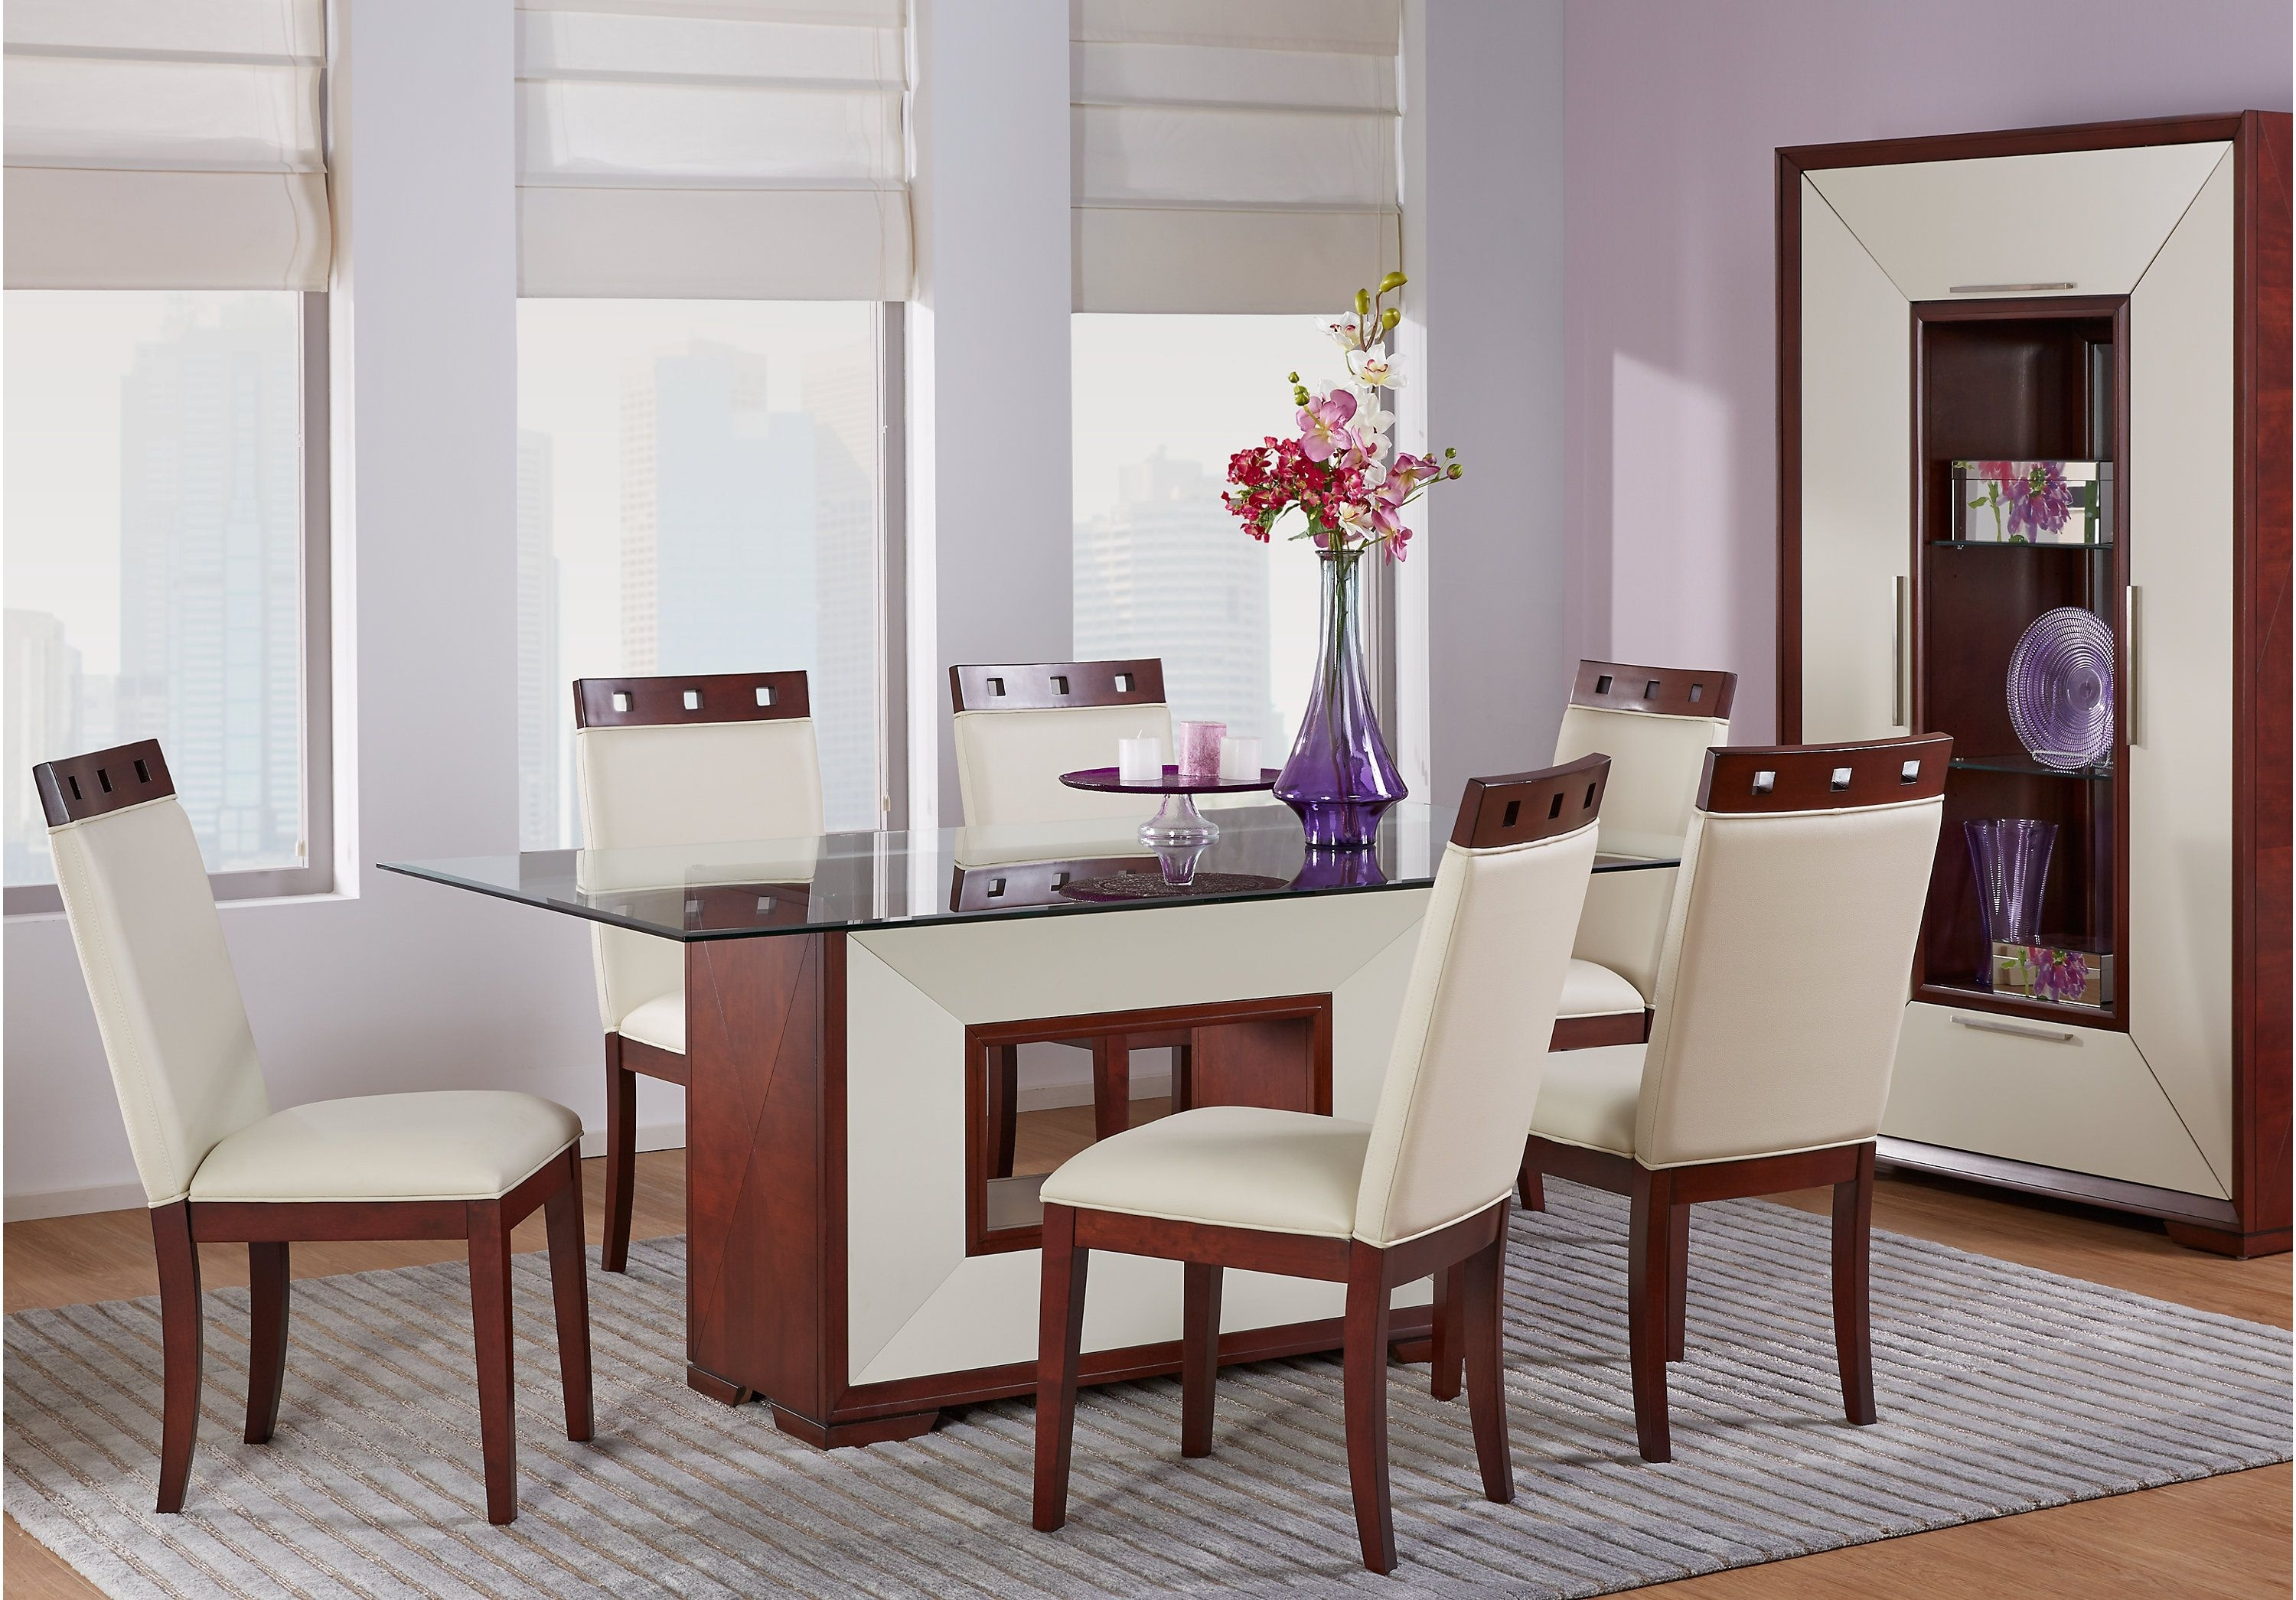 Sofia Vergara Savona Ivory 5 Pc Rectangle Dining Room With Glass Top Pertaining To 2017 Palazzo 7 Piece Dining Sets With Pearson White Side Chairs (View 14 of 20)